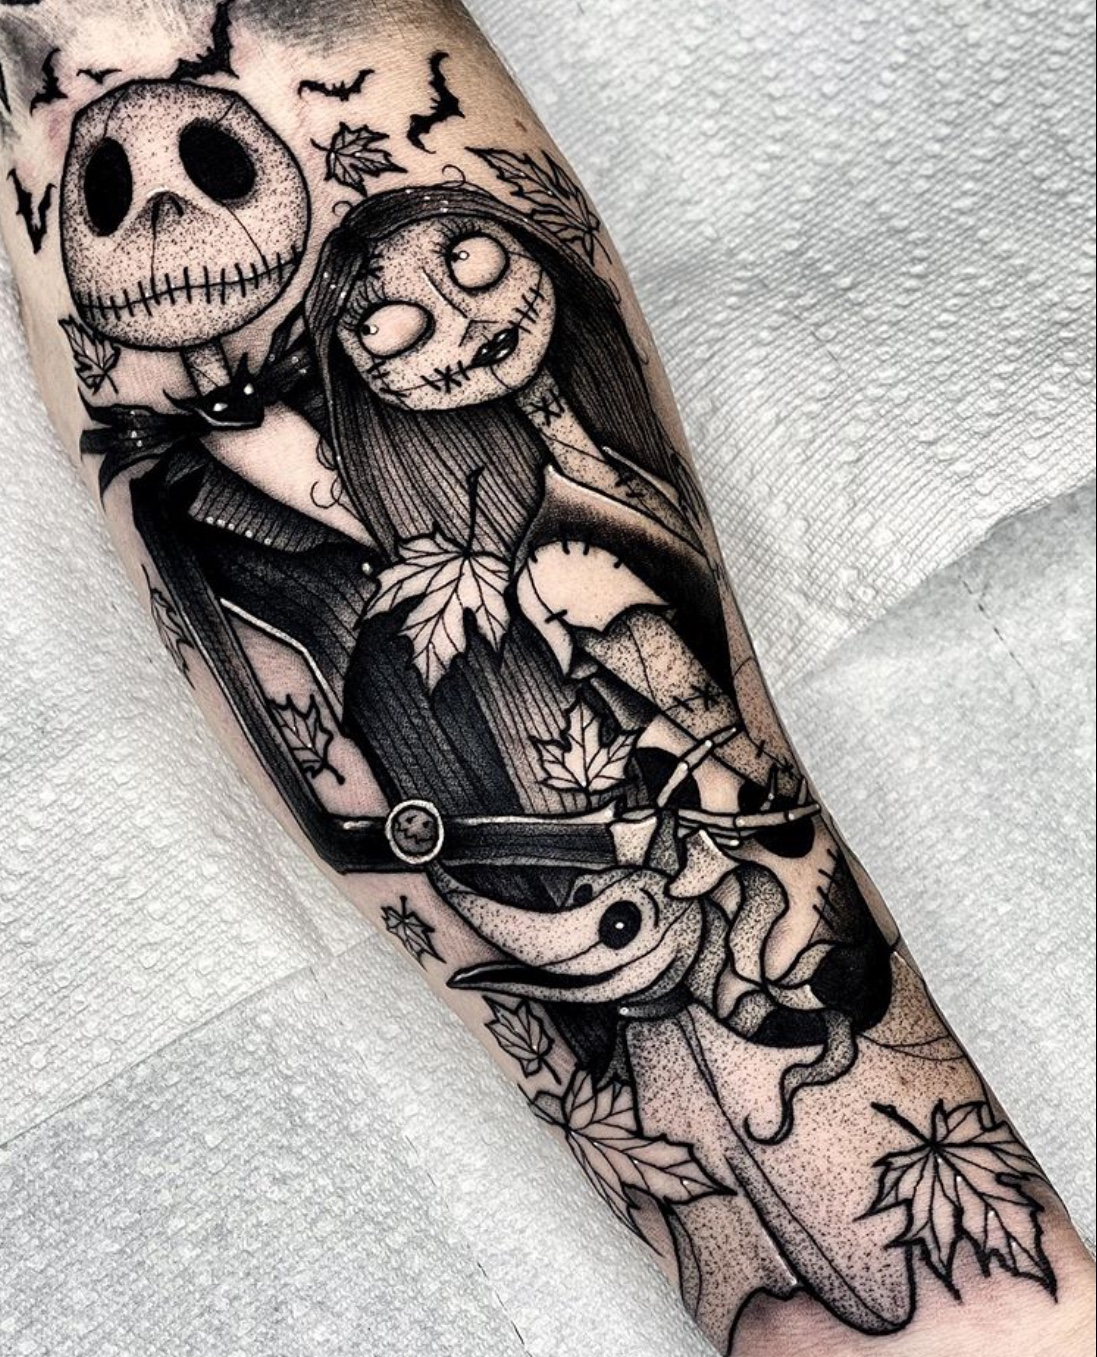 Advertisement please copy/paste the following text to properly cite this howstuffworks. 50 Spooky Halloween Tattoo Ideas The Xo Factor